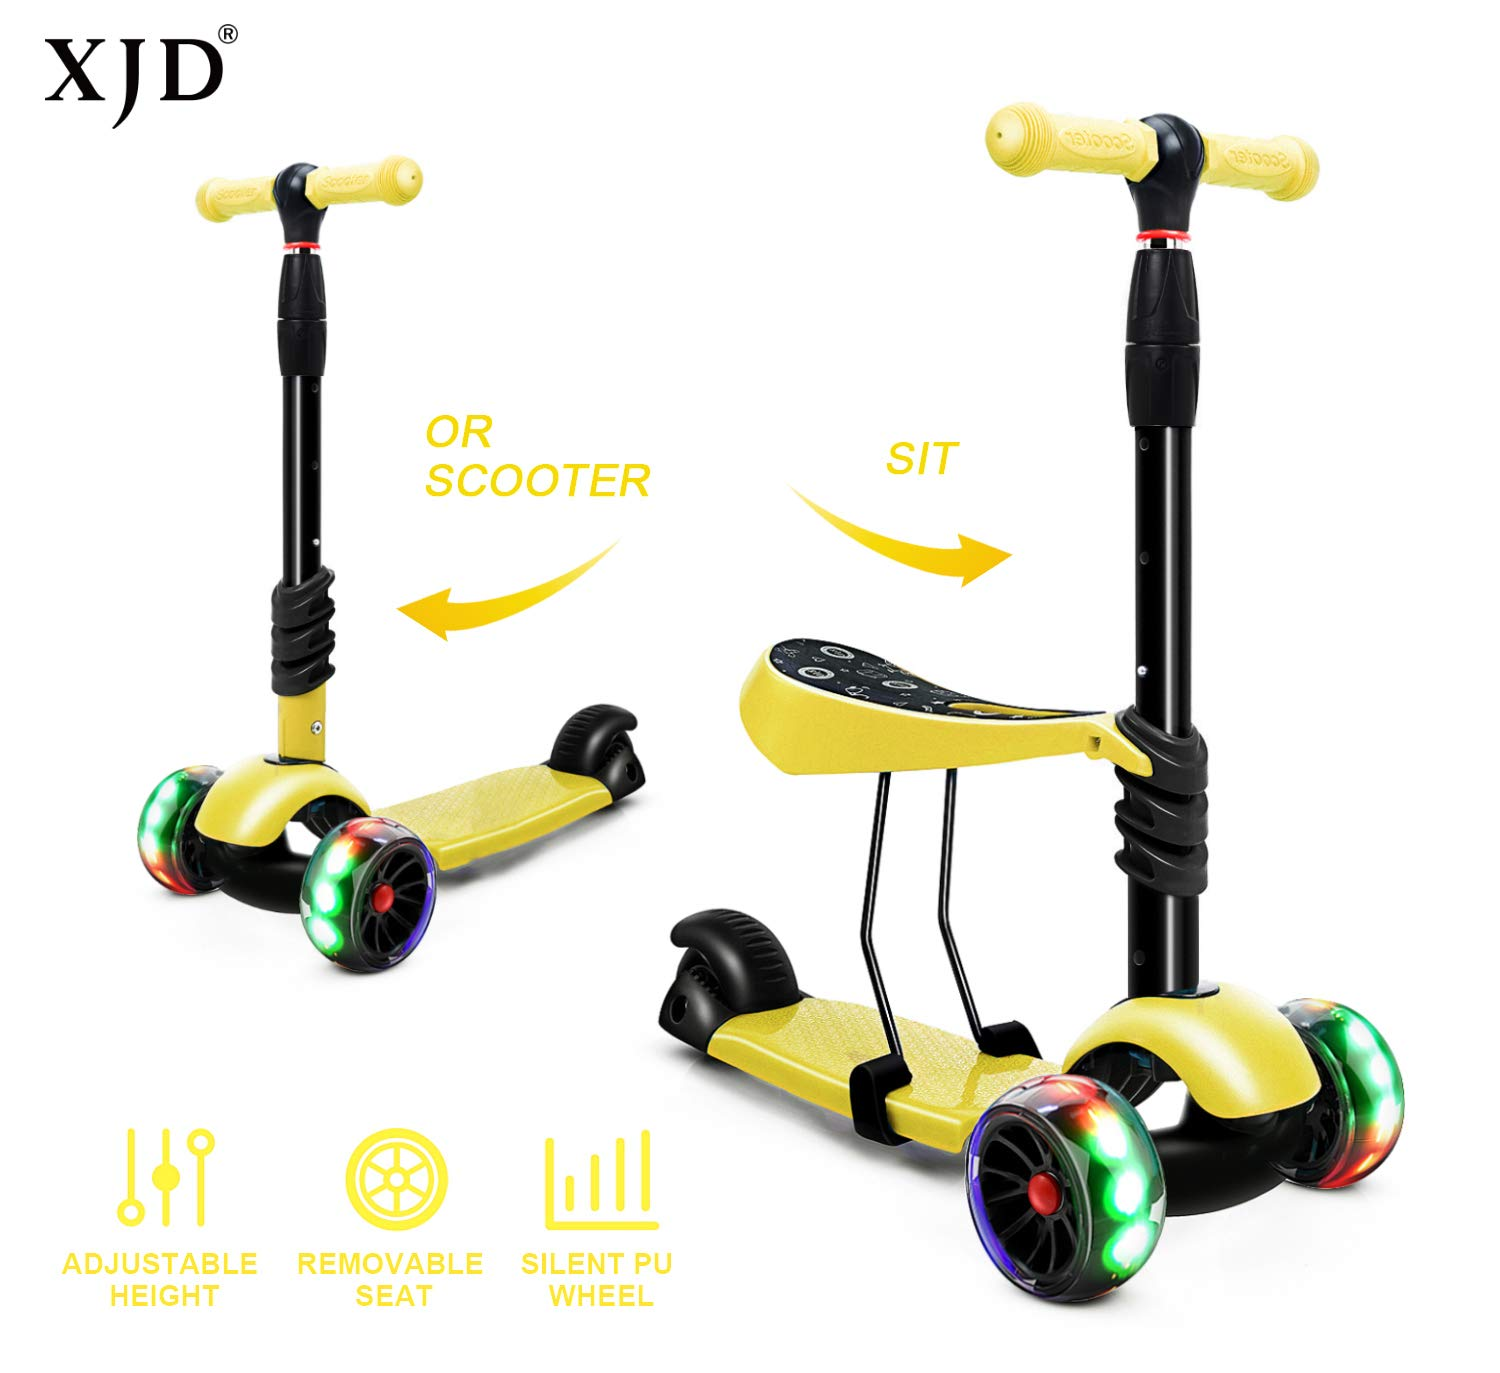 Yellow XJD 3-in-1 Kick Scooter for Kids Toddler Scooter Boys Girls with Removable Seat 5Cm Big Pu Flashing Wheels Adjustable Height Handlebar Children Scooter Age 3-8 Years Old